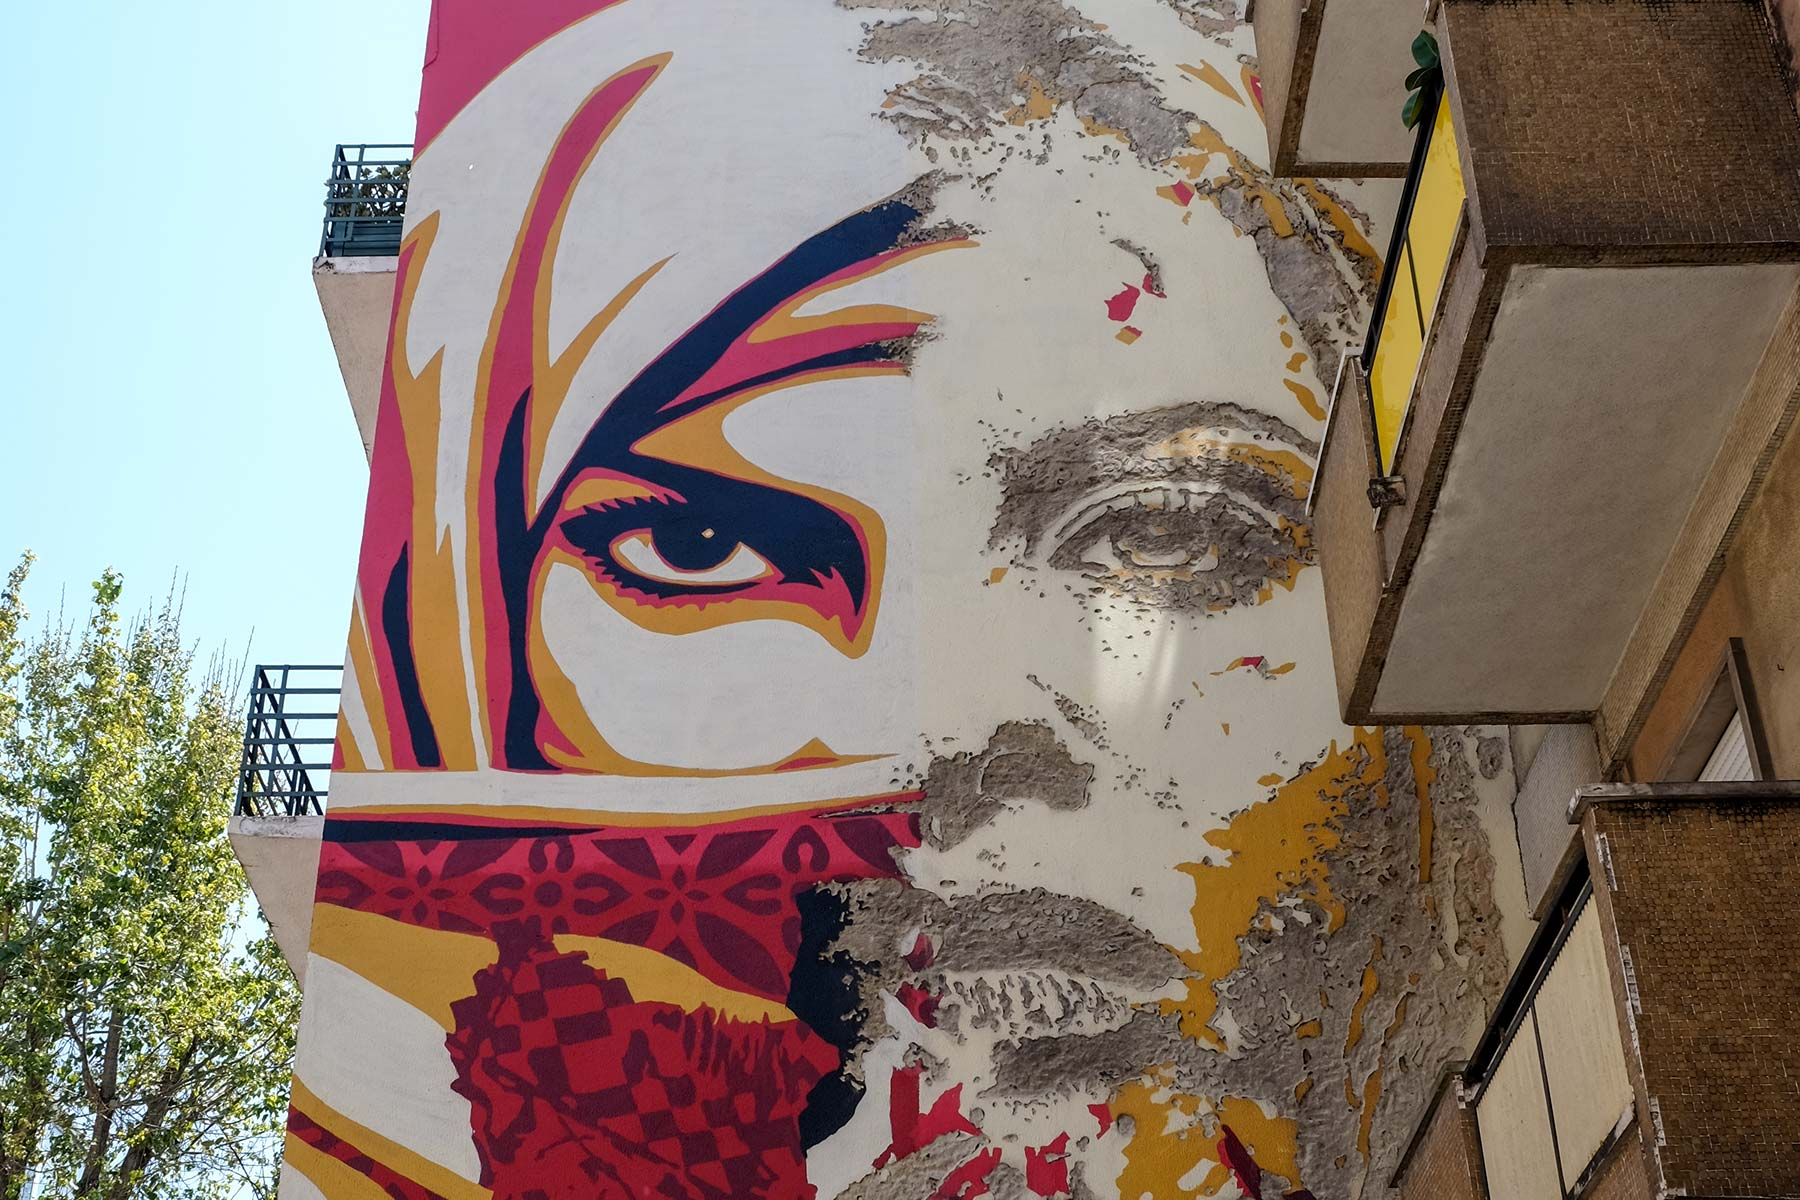 Vhils in Lissabon, Portugal